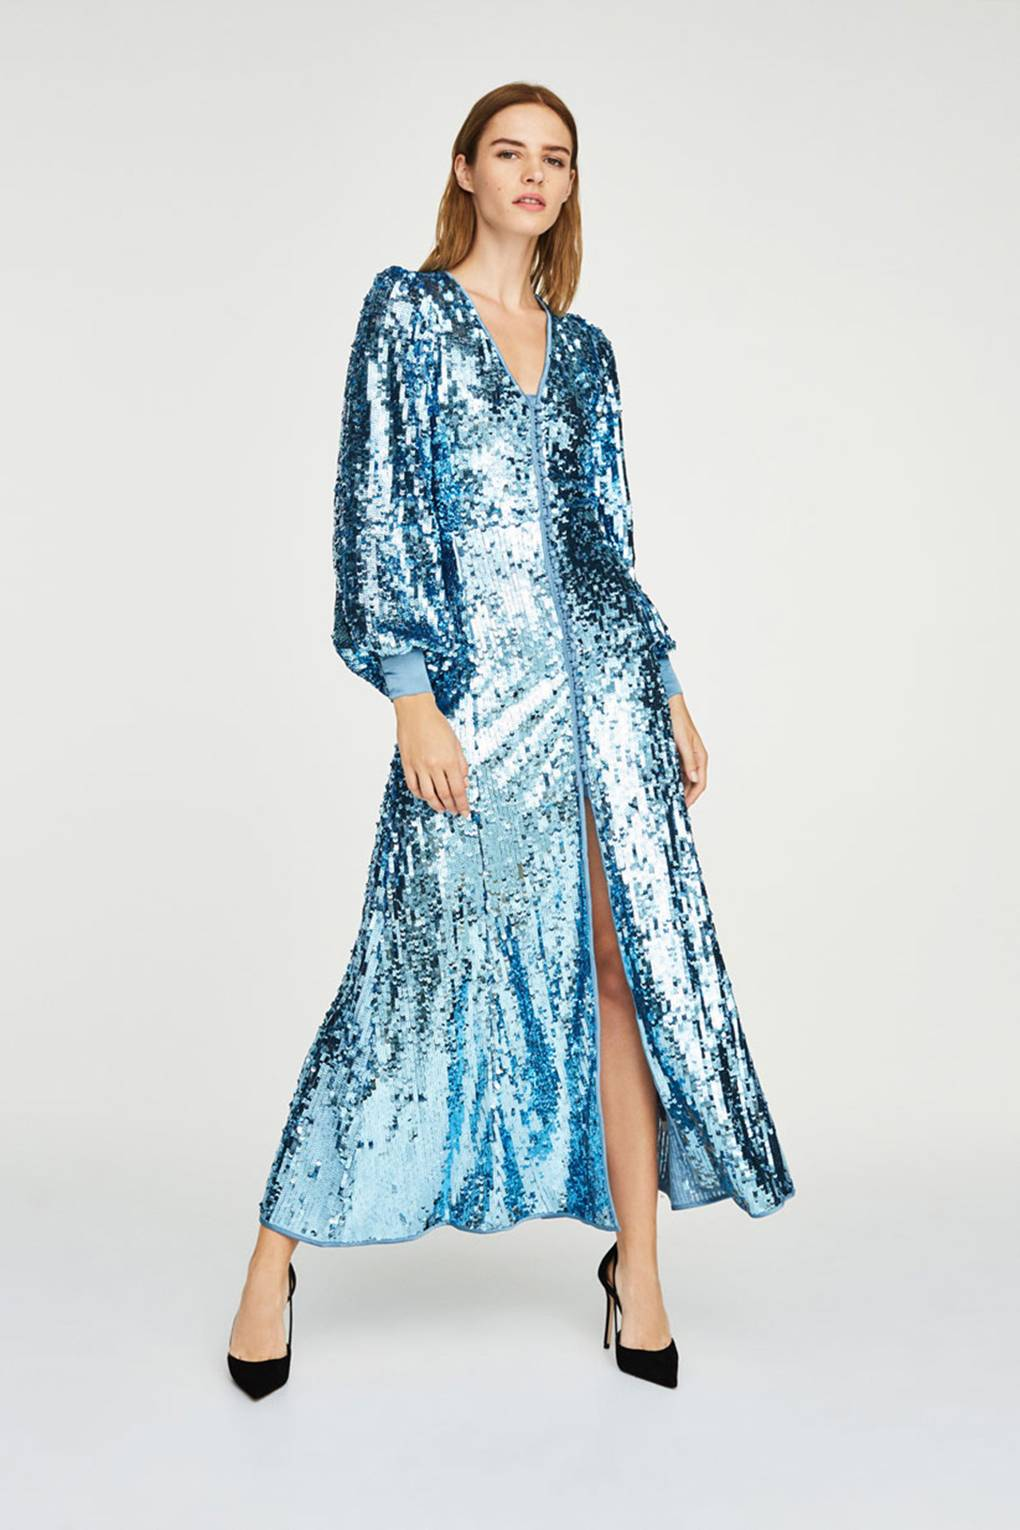 Wedding Guest Dresses: What To Wear To A Wedding In 2018   Glamour UK